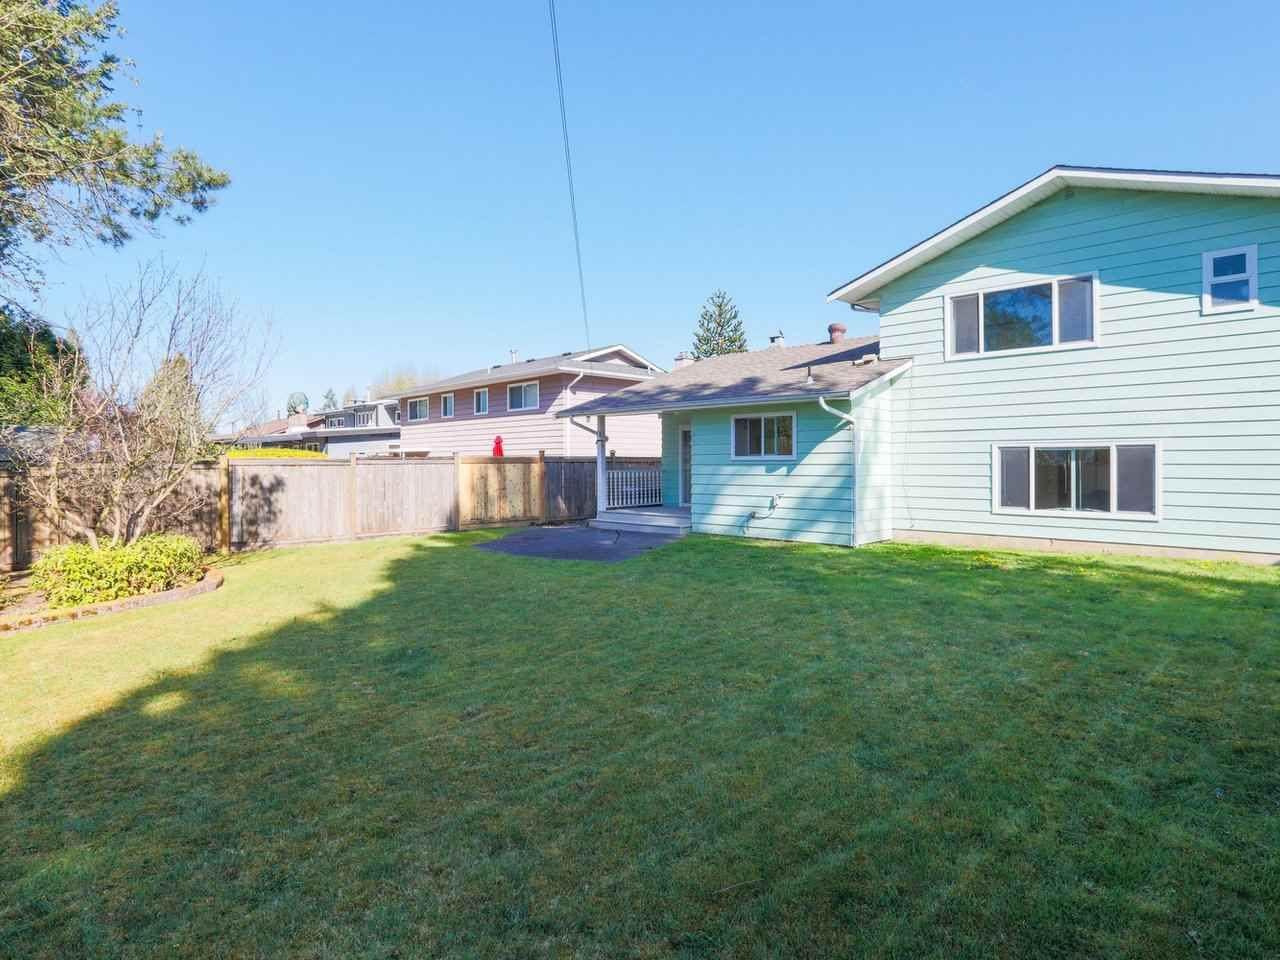 Photo 24: Photos: 1422 GROVER Avenue in Coquitlam: Central Coquitlam House for sale : MLS®# R2568207